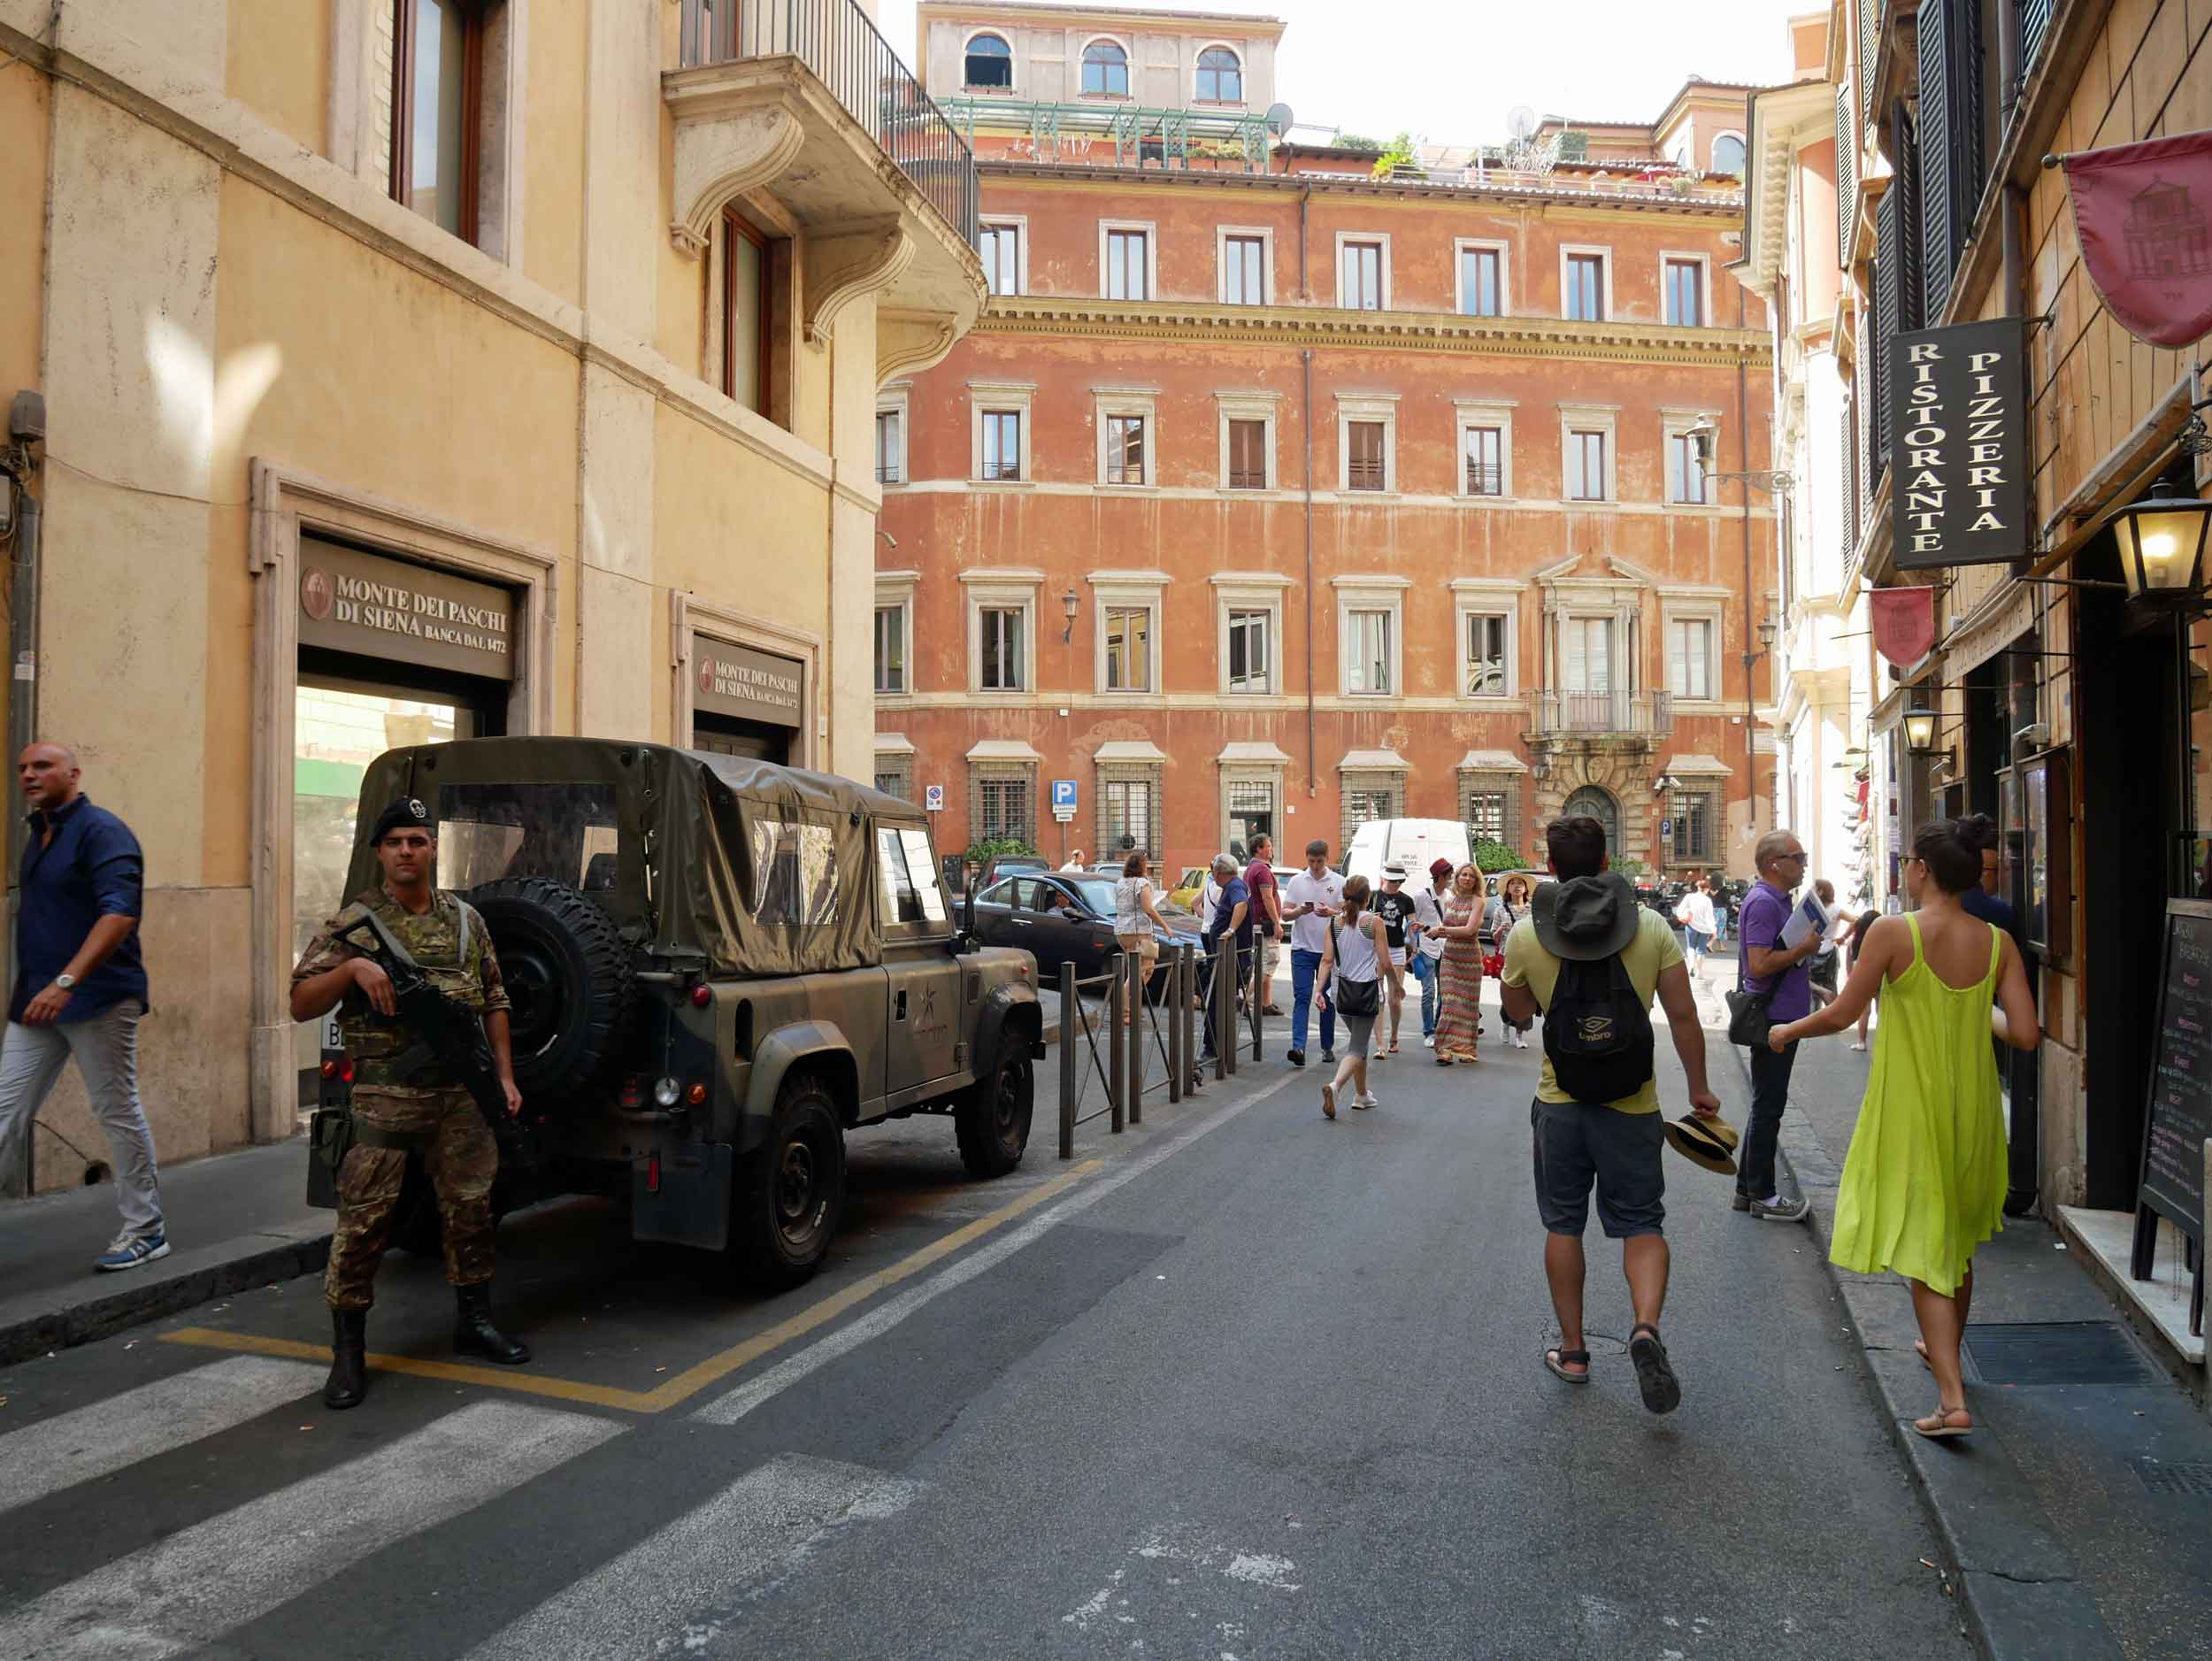 A common sight given the unfortunate events of today's world, Italian military lined the streets along the city's tourist zones.